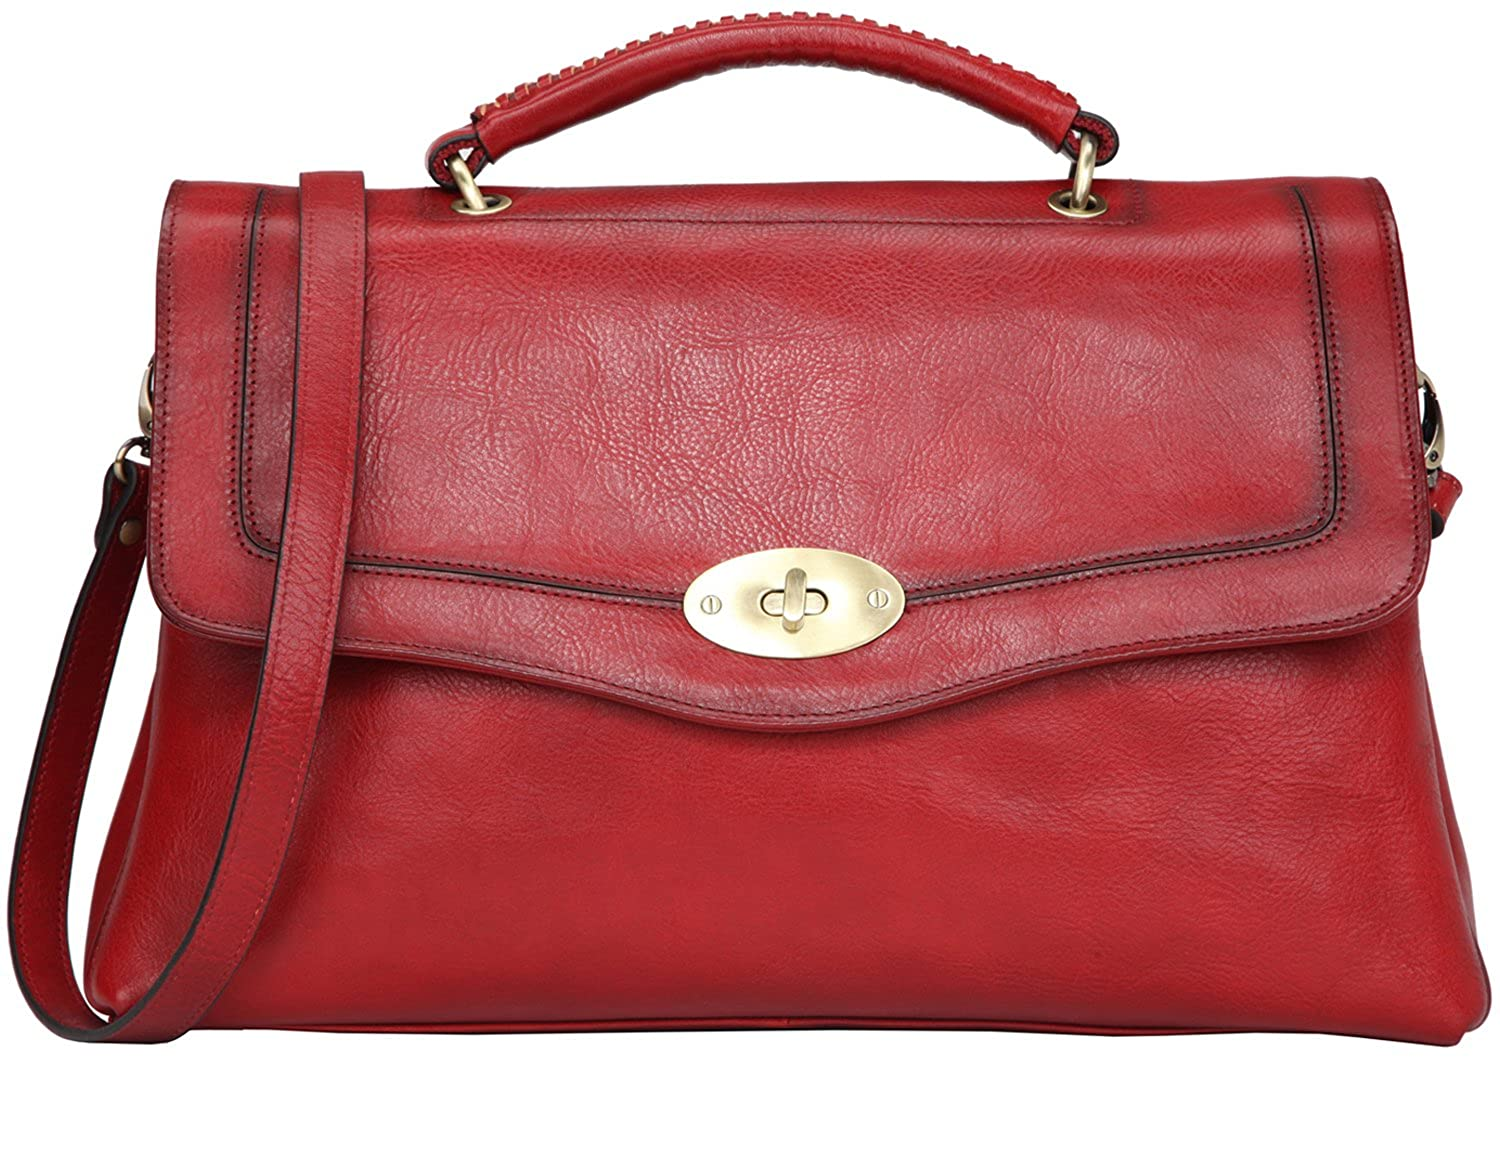 036d1233e8 Banuce Vintage Full Grains Italian Leather Handbags for Women Shoulder  Messenger Bag Ladies Tote Bag Purse Red  Handbags  Amazon.com